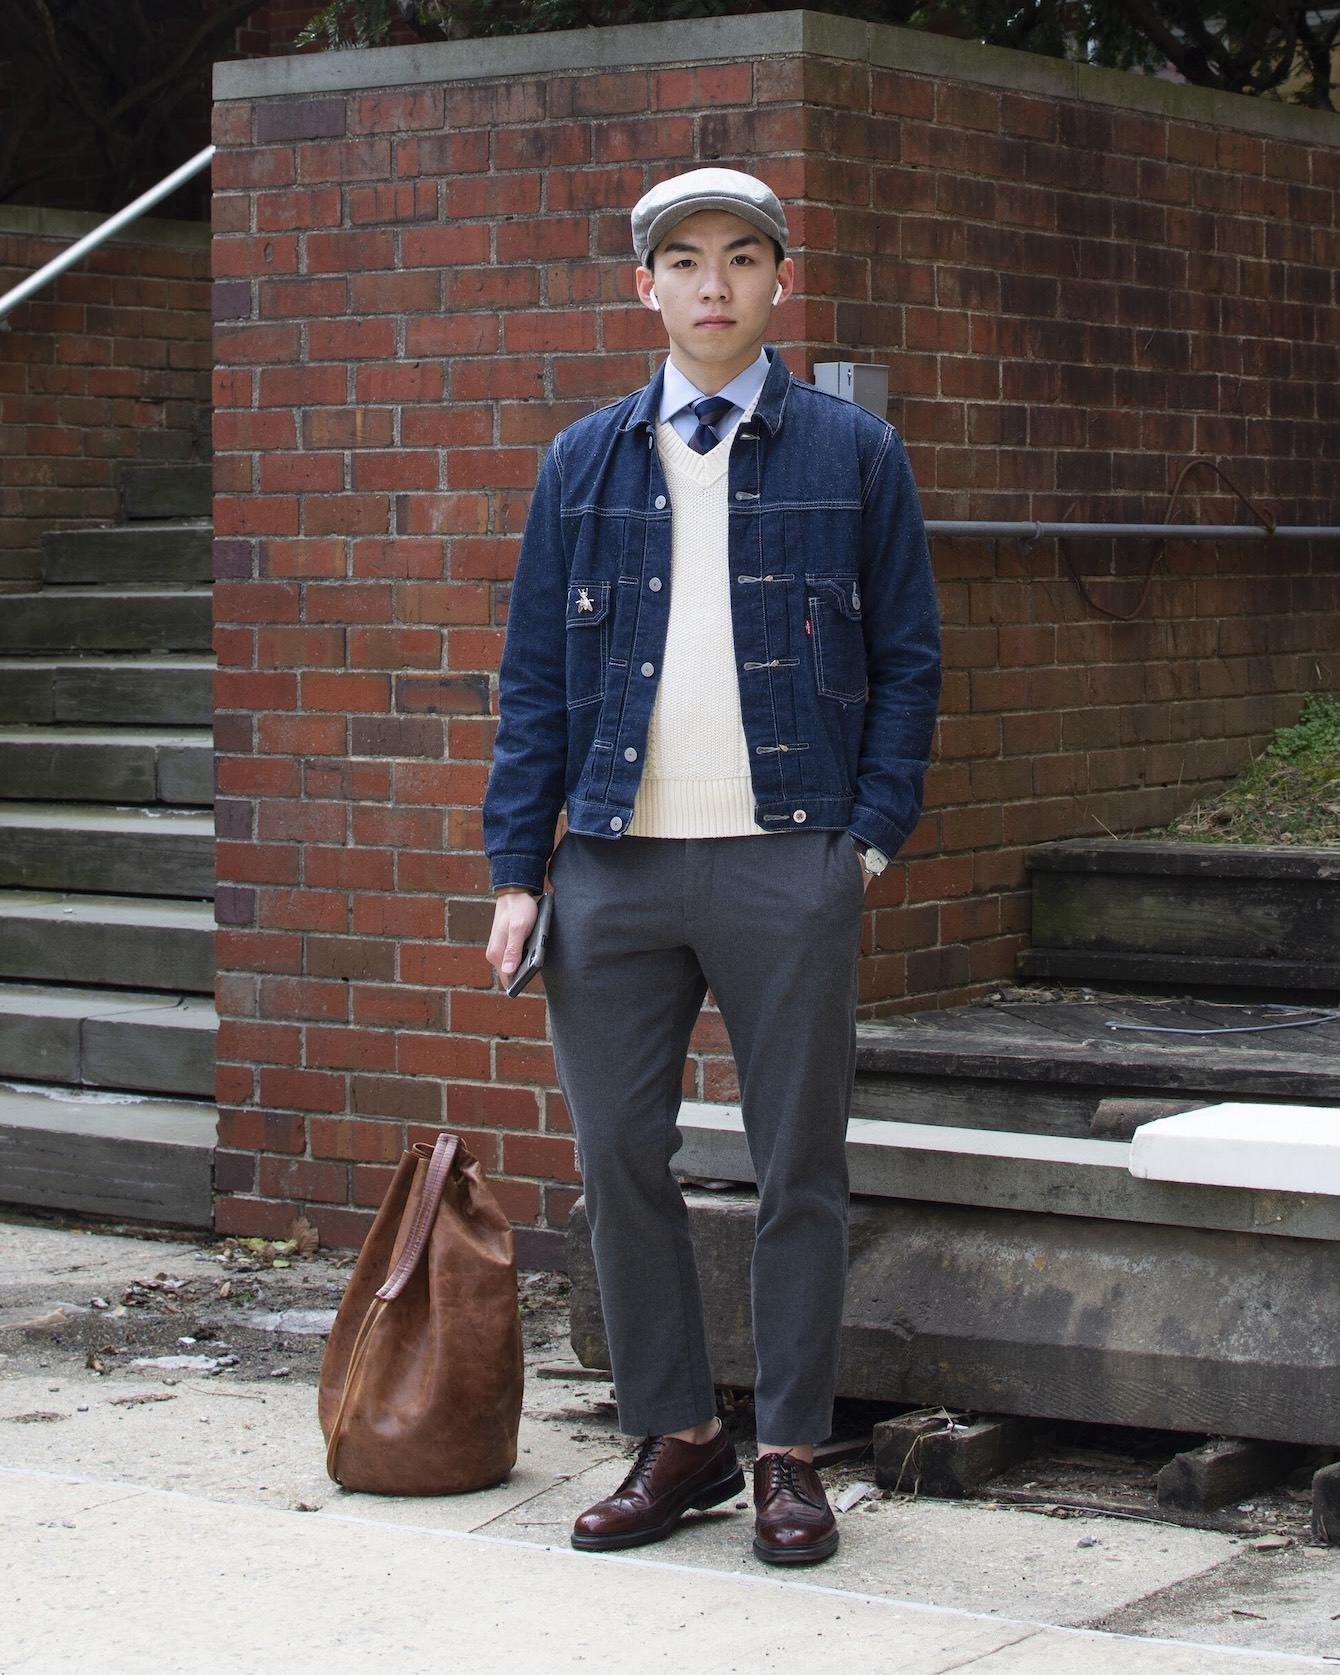 Humphrey Tsui wearing a preppy outfit